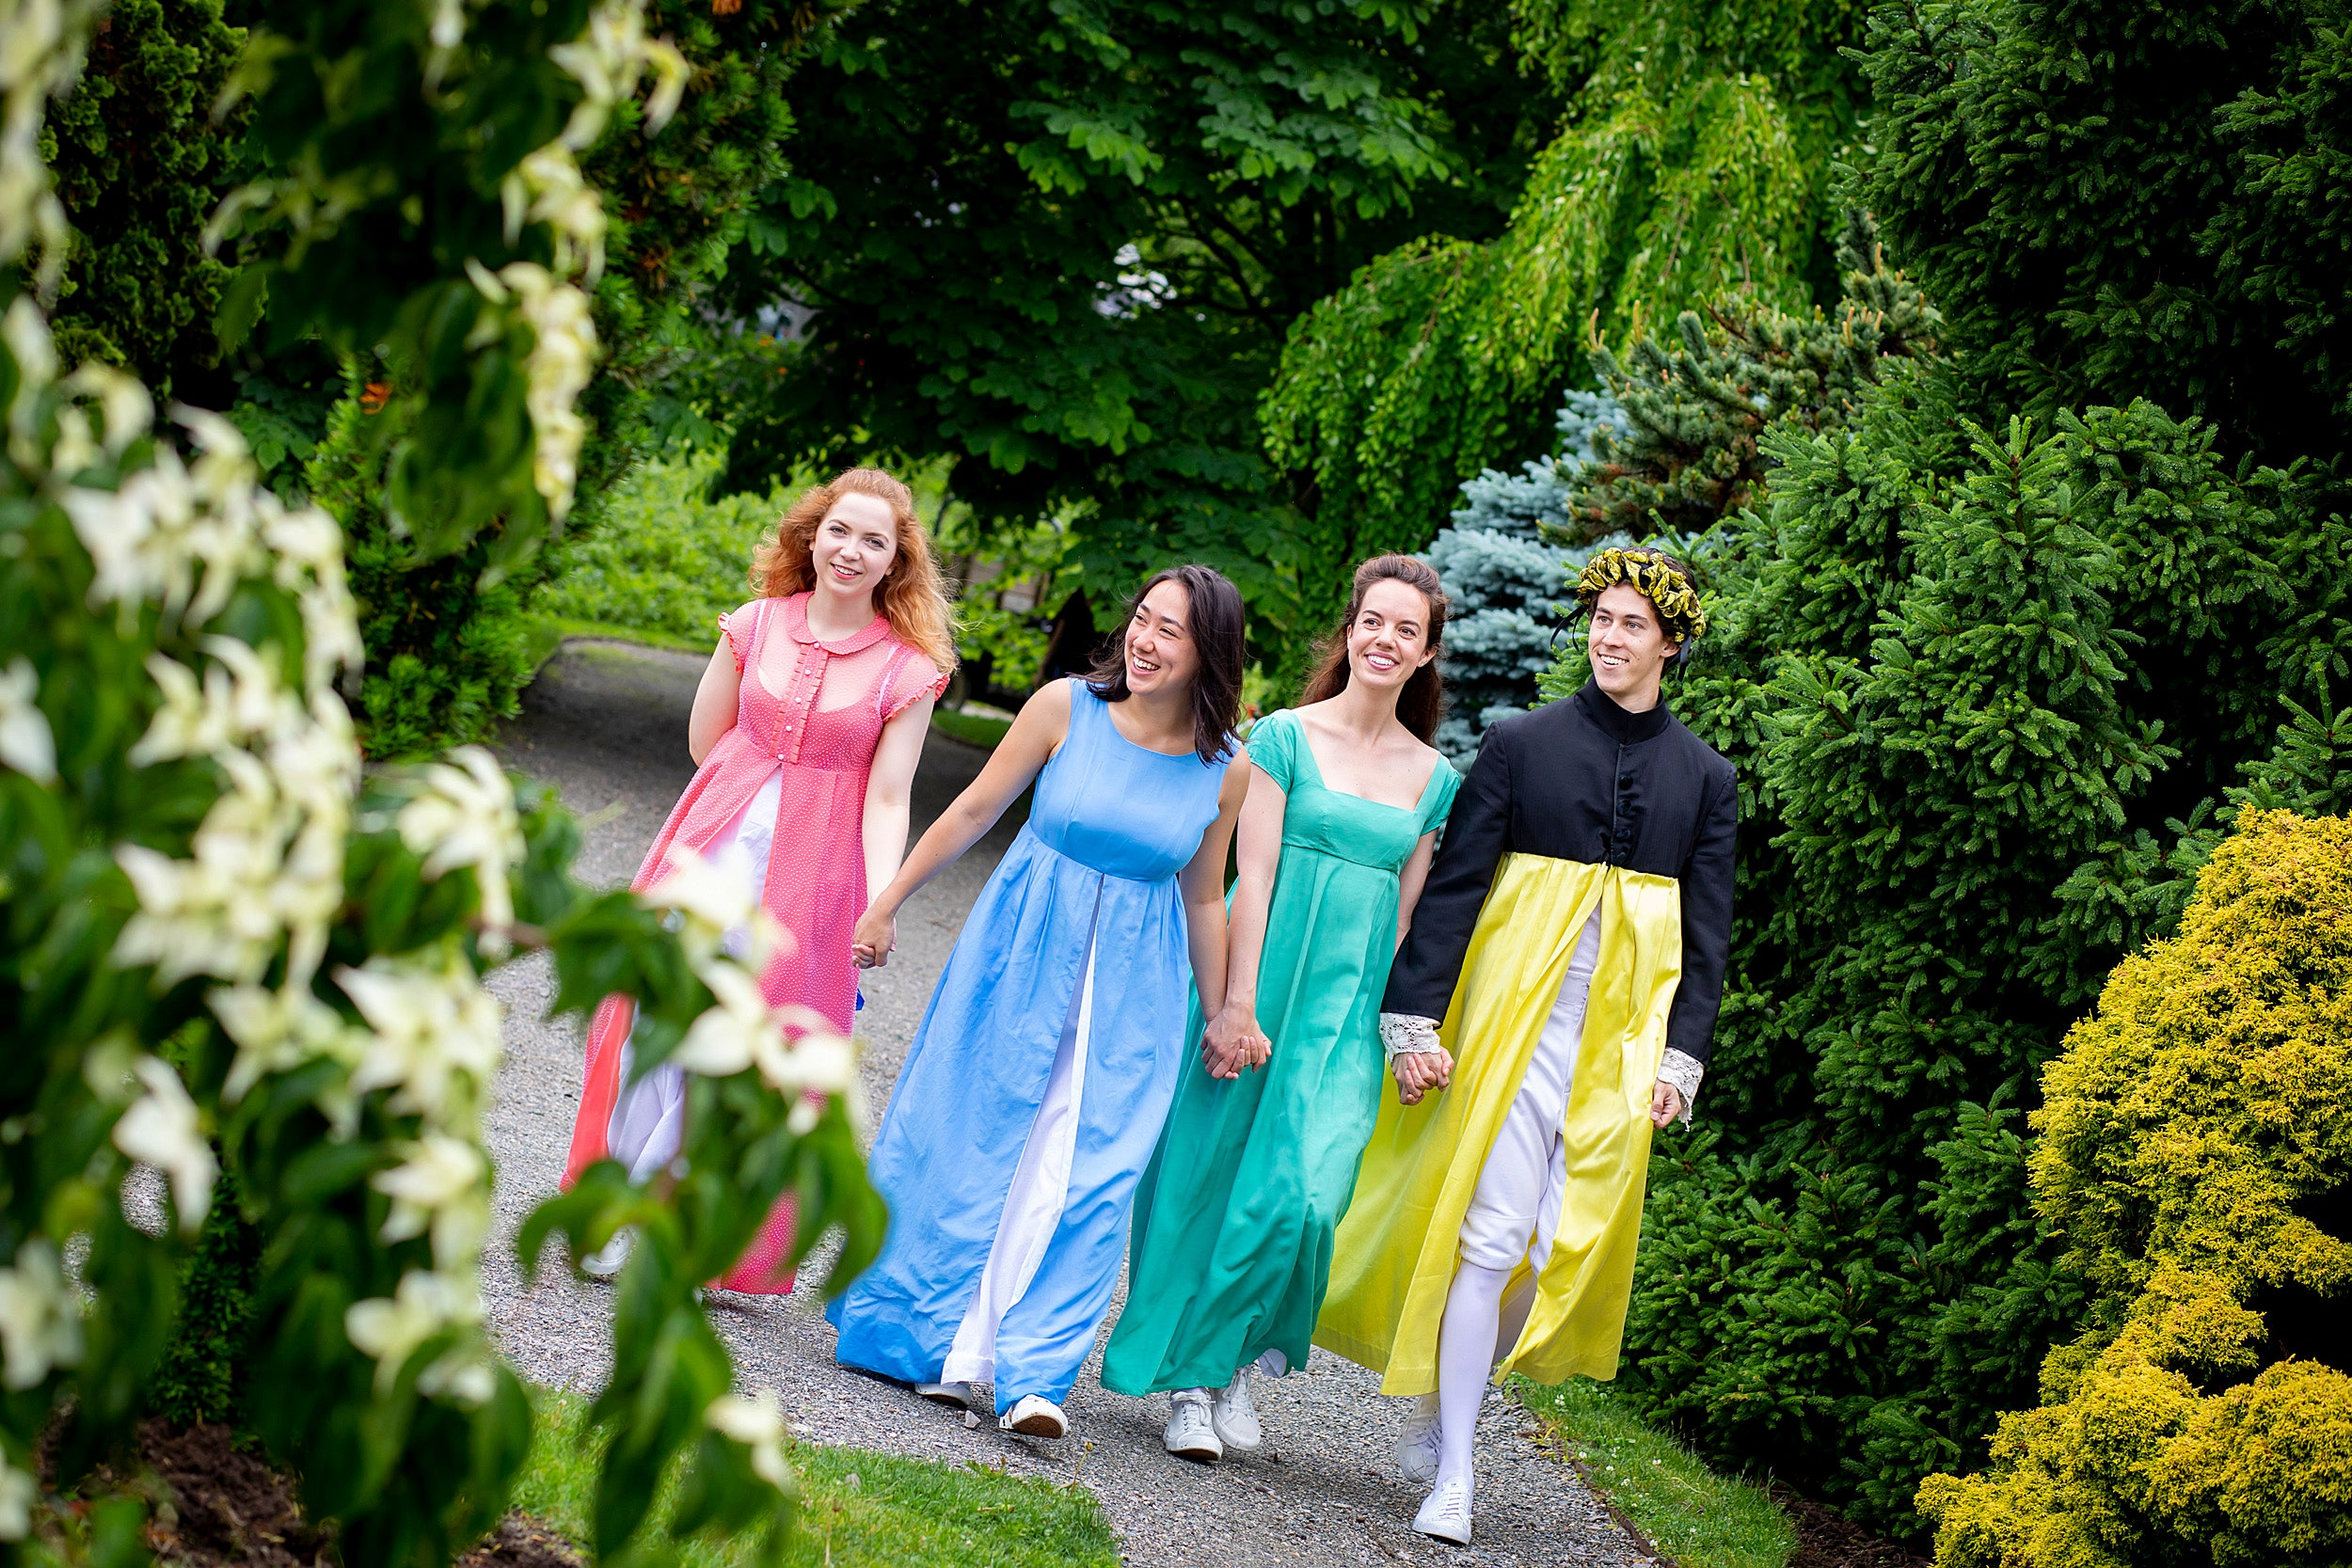 The cast of Pride in Prejudice walking through the Arboretum